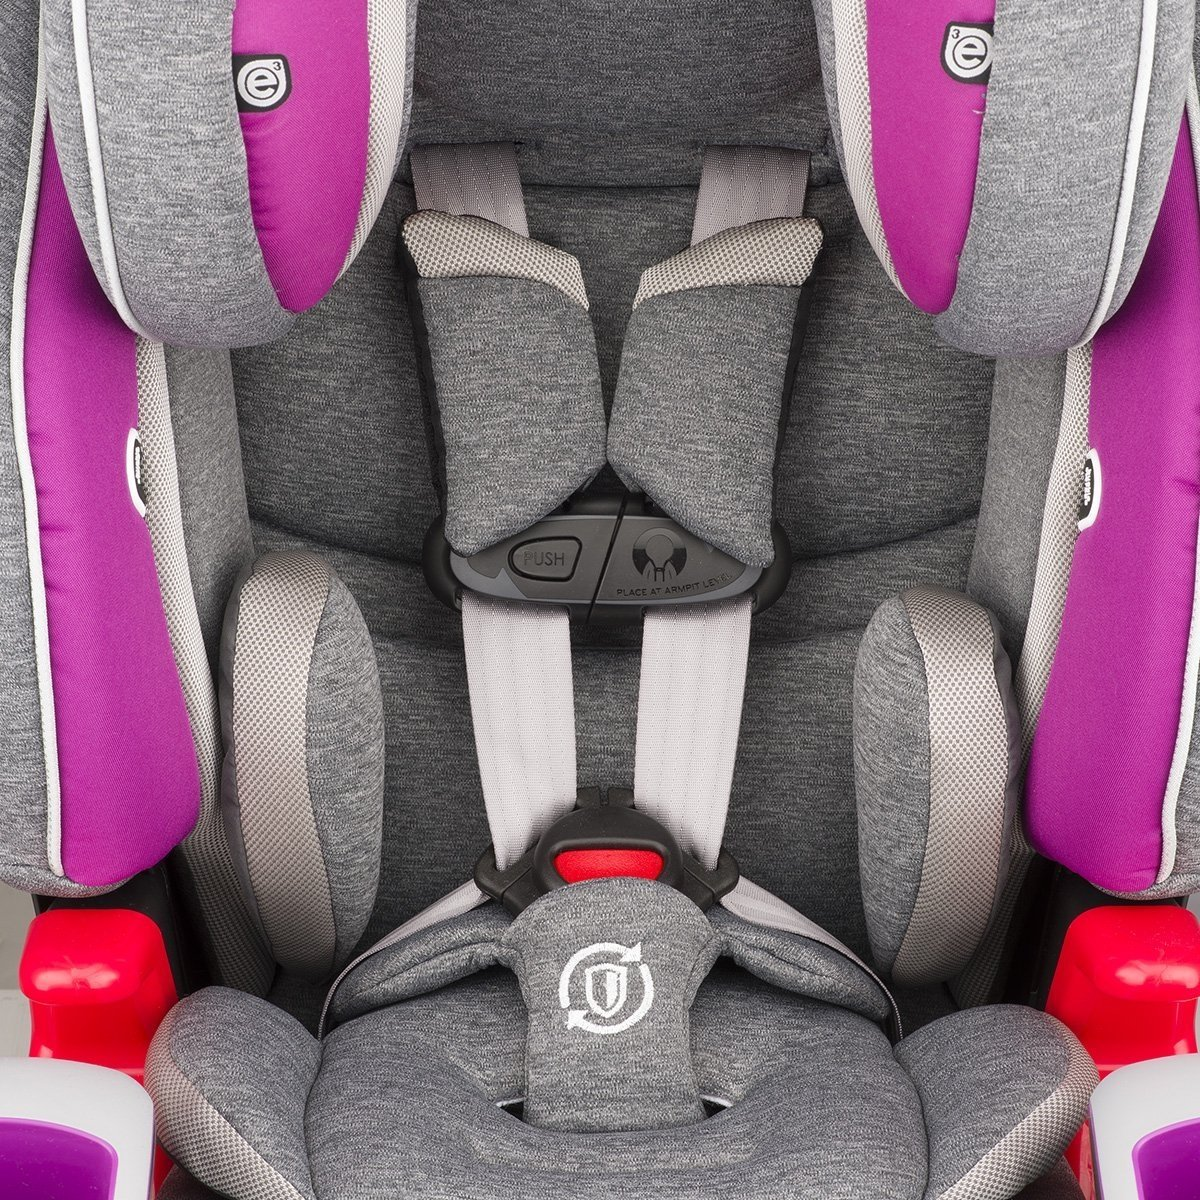 Evenflo Evolve Platinum 3 In 1 Combination Booster Seat Dreamer Product Details